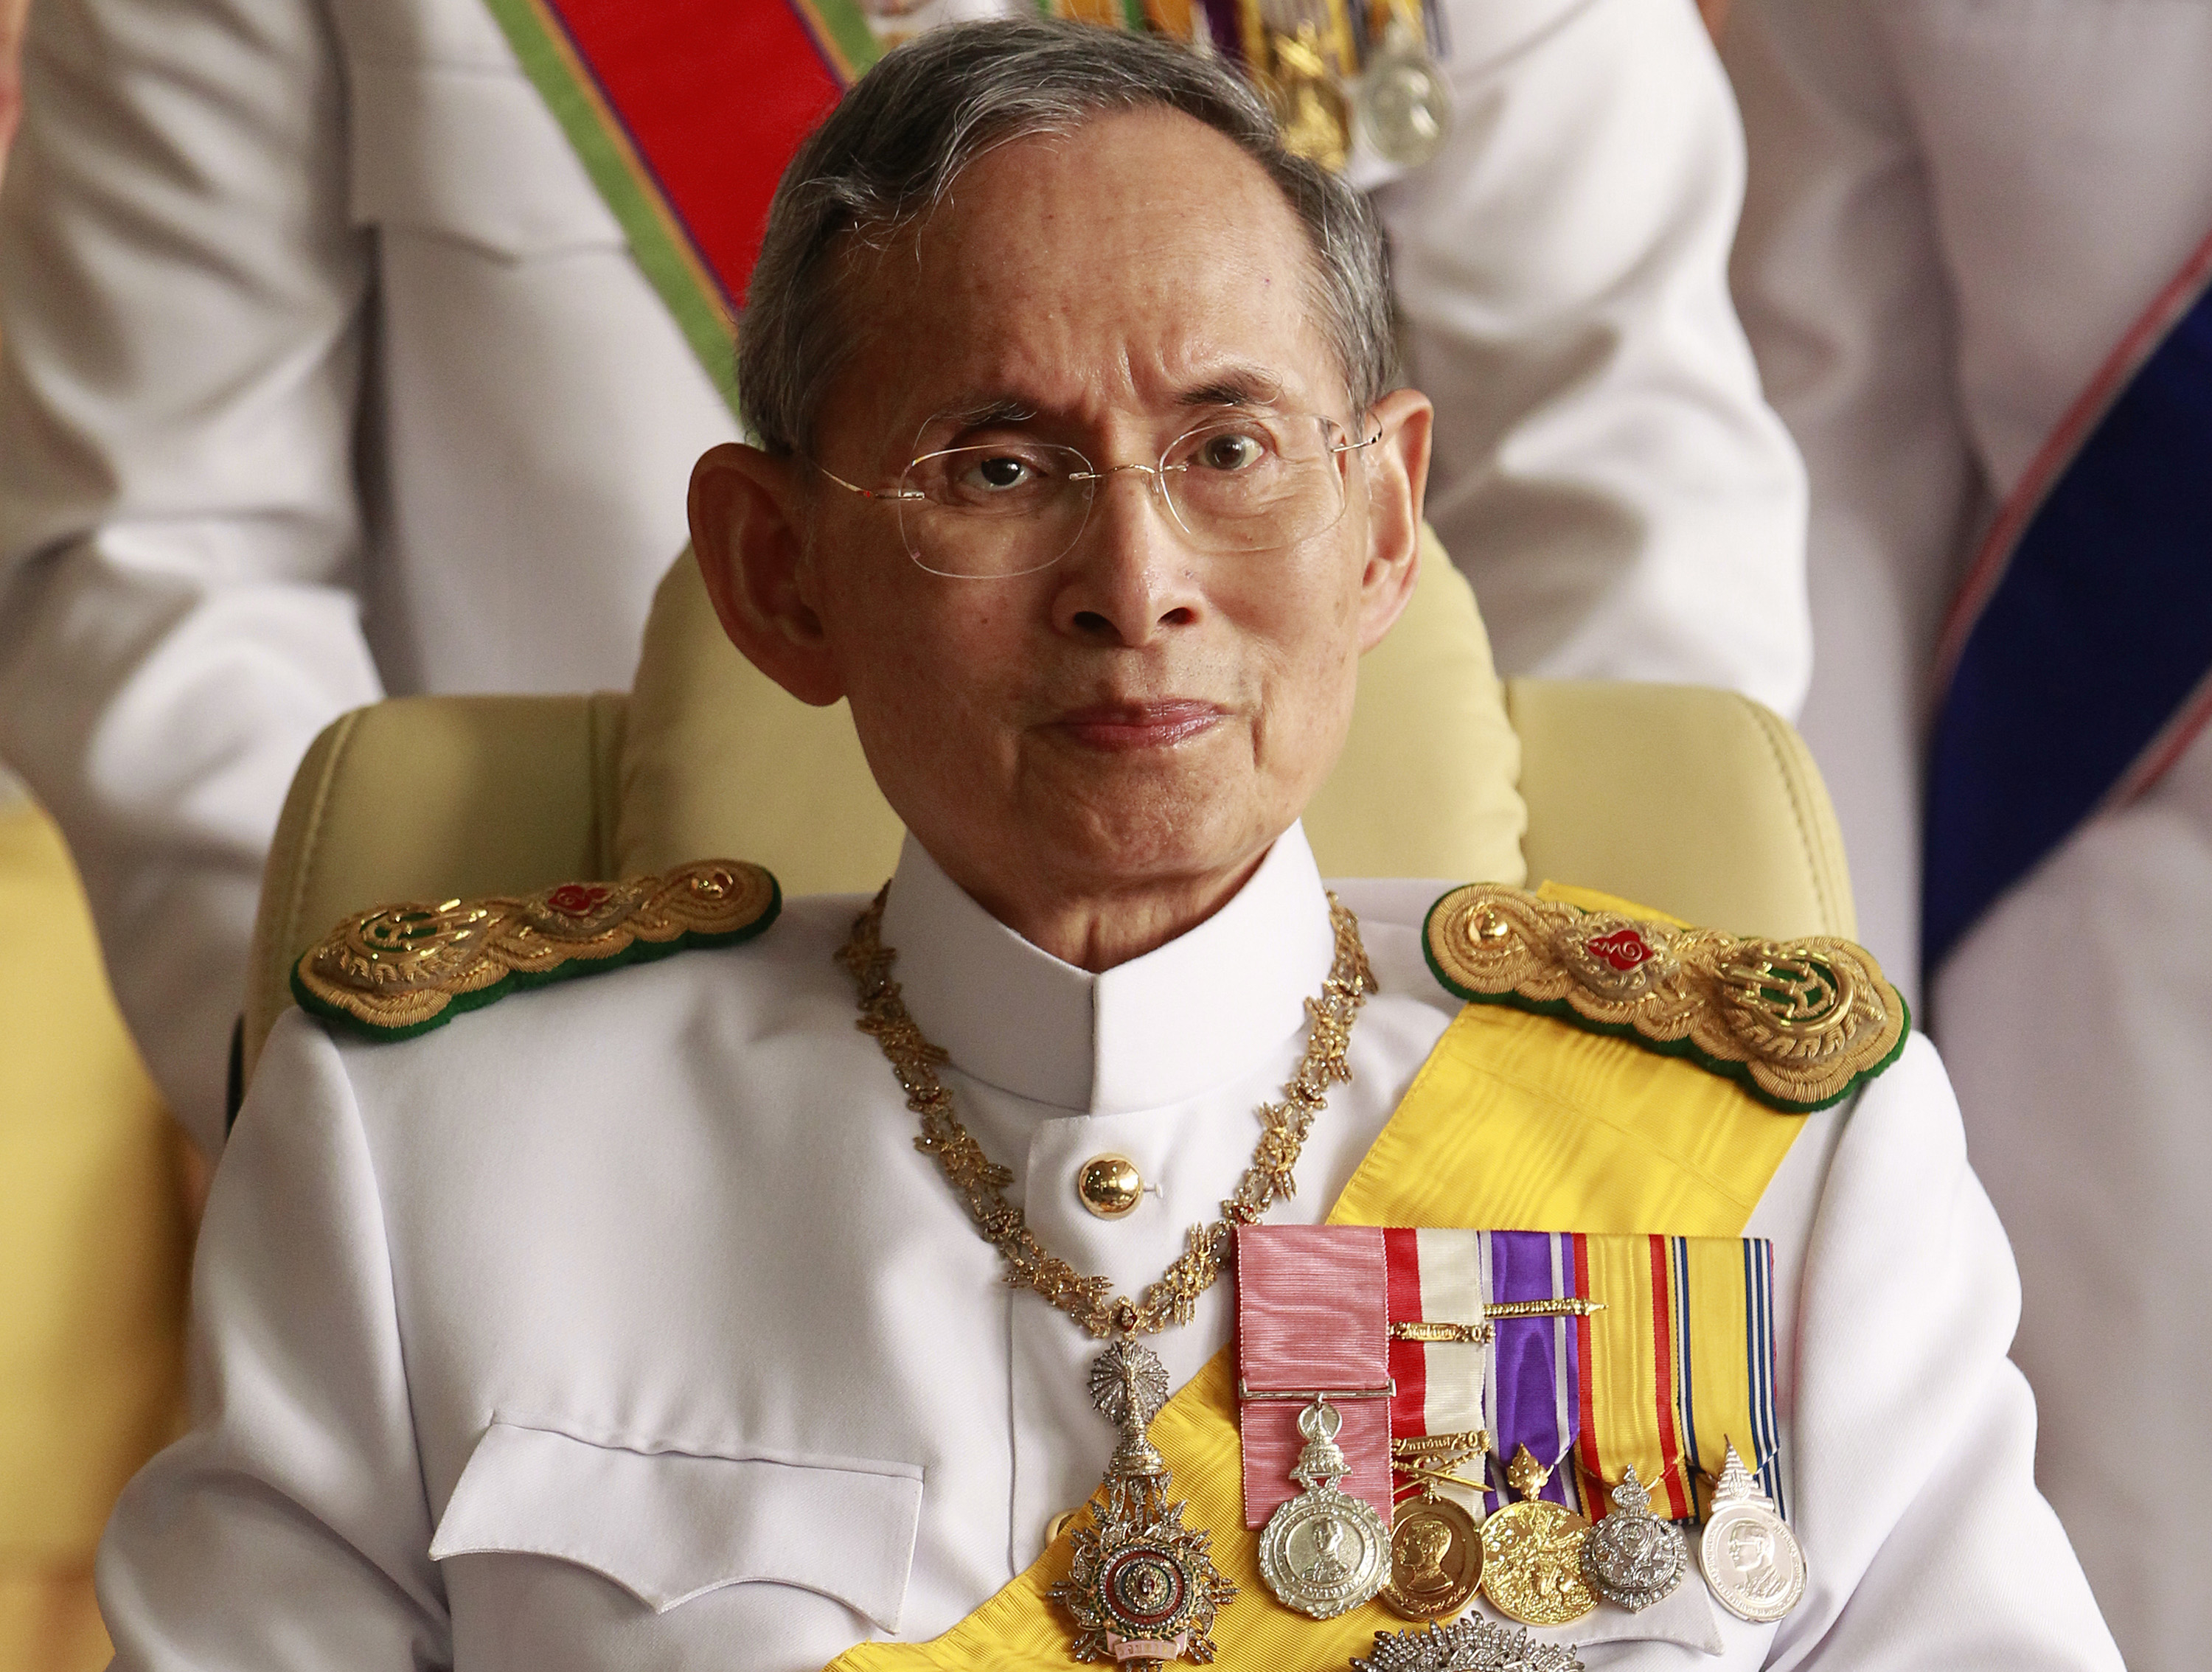 Thailand's King Bhumibol Adulyadej leaves the Siriraj Hospital for a ceremony at the Grand Palace in Bangkok Kokula Krishna Hari Kunasekaran